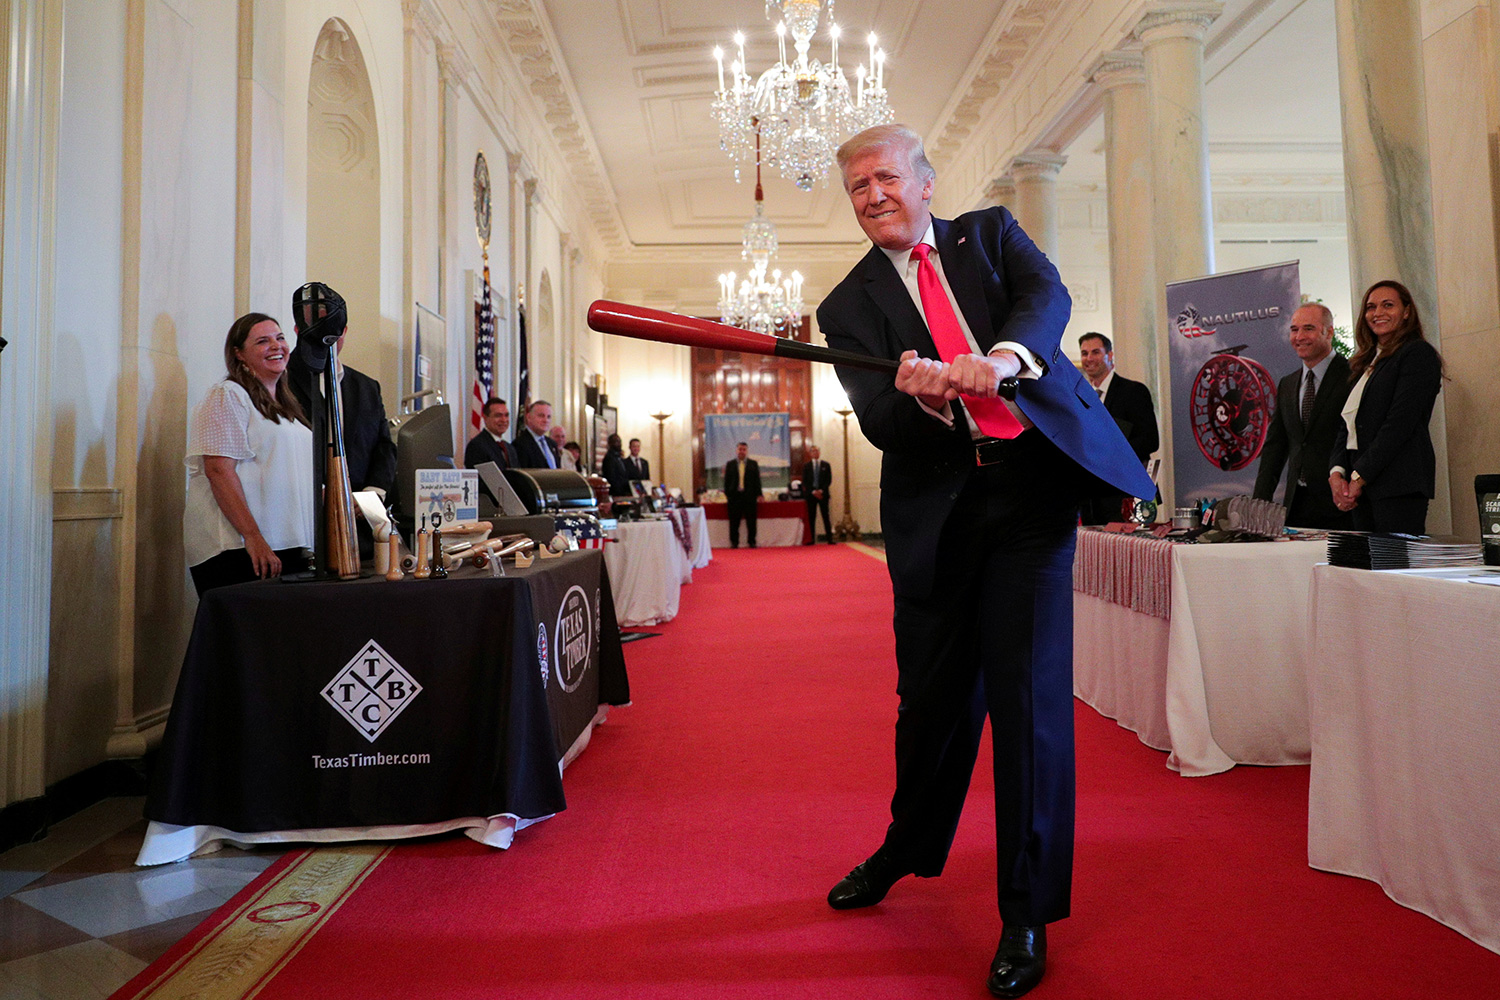 "U.S. President Donald J. Trump swings a wooden baseball bat, celebrating a new jobs report, as he attends a ""Spirit of America Showcase"" event at the White House in Washington, DC, on July 2, 2020. The photo shows the president hamming it up with people staffing booths and swinging a red bat. REUTERS/Tom Brenner"